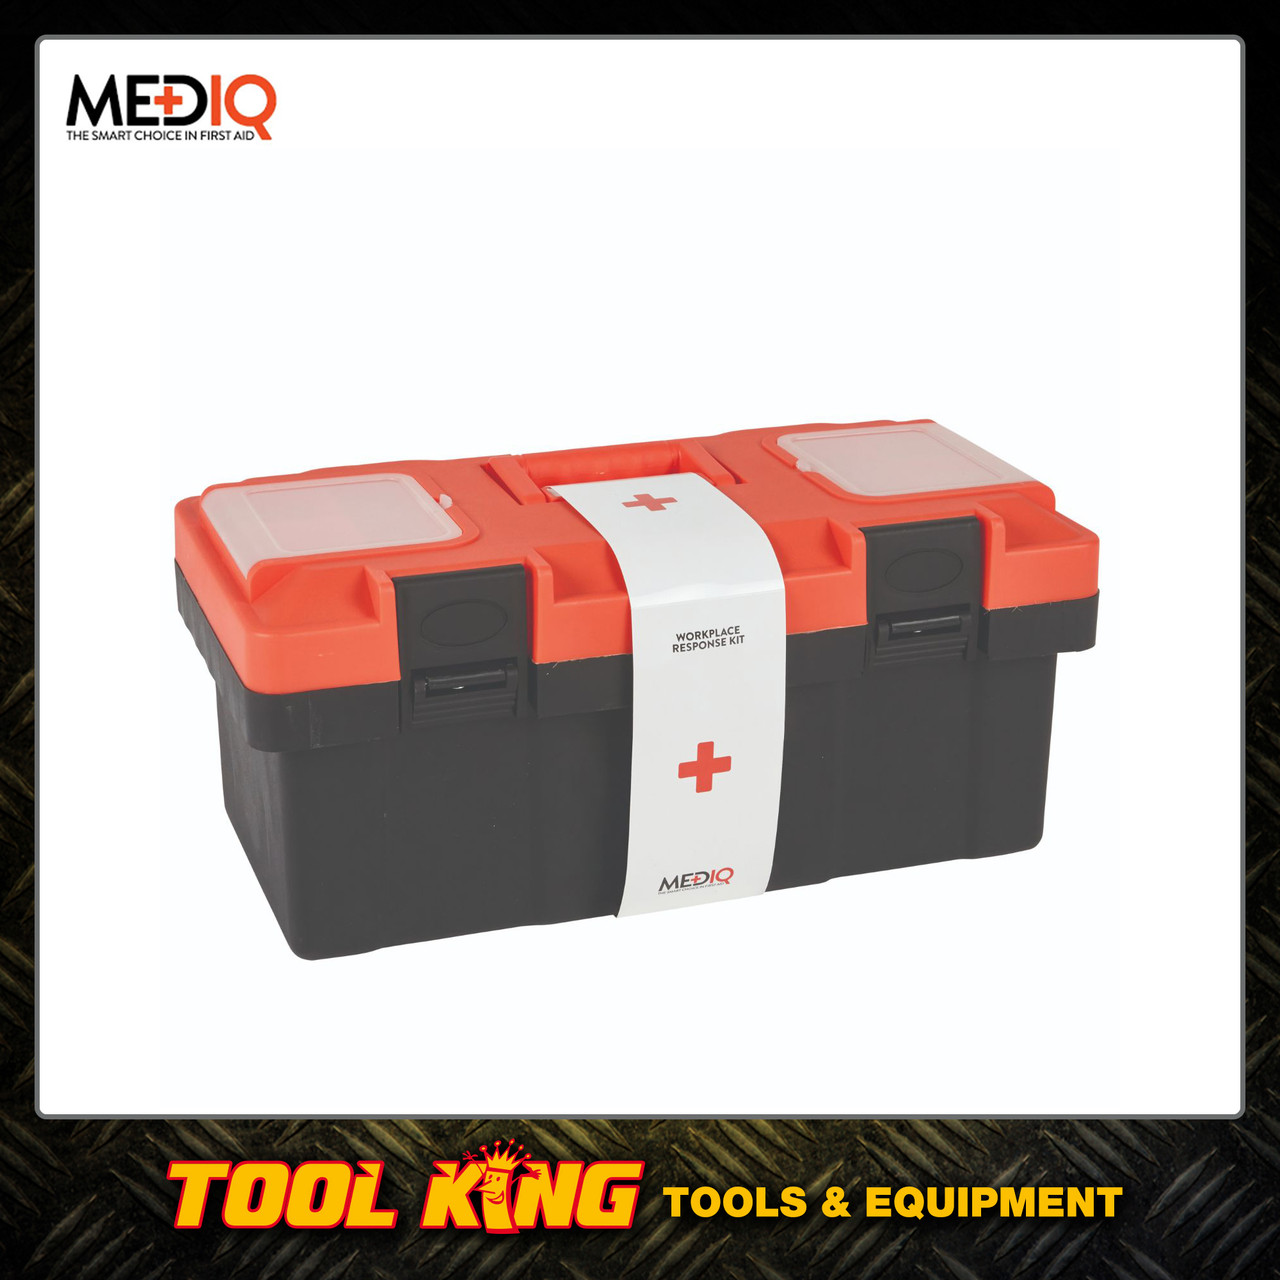 First Aid Kit Workplace 1-25 people low risk MEDIQ